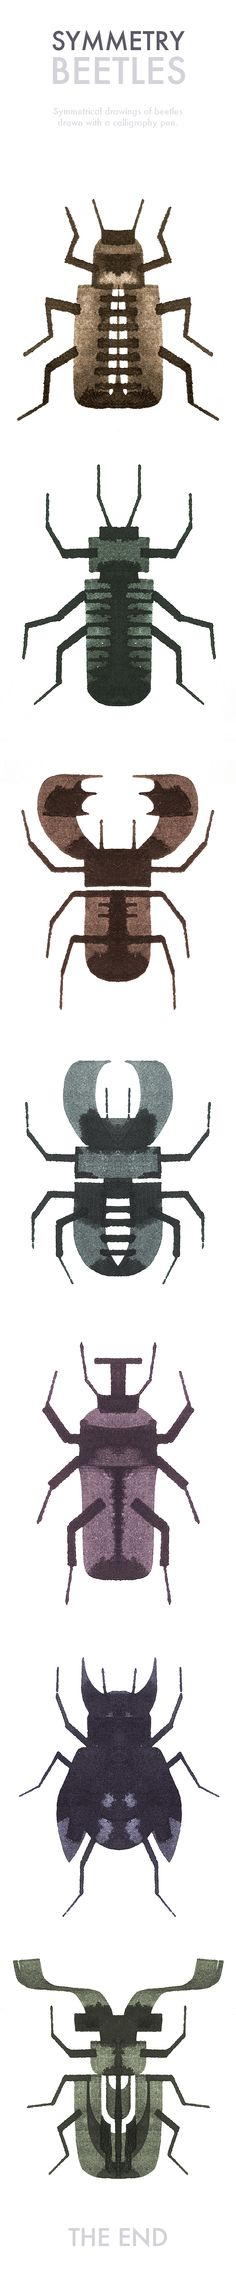 Symmetry Beetles — Symmetrical drawings of beetles drawn with a calligraphy pen — Andrew Fox